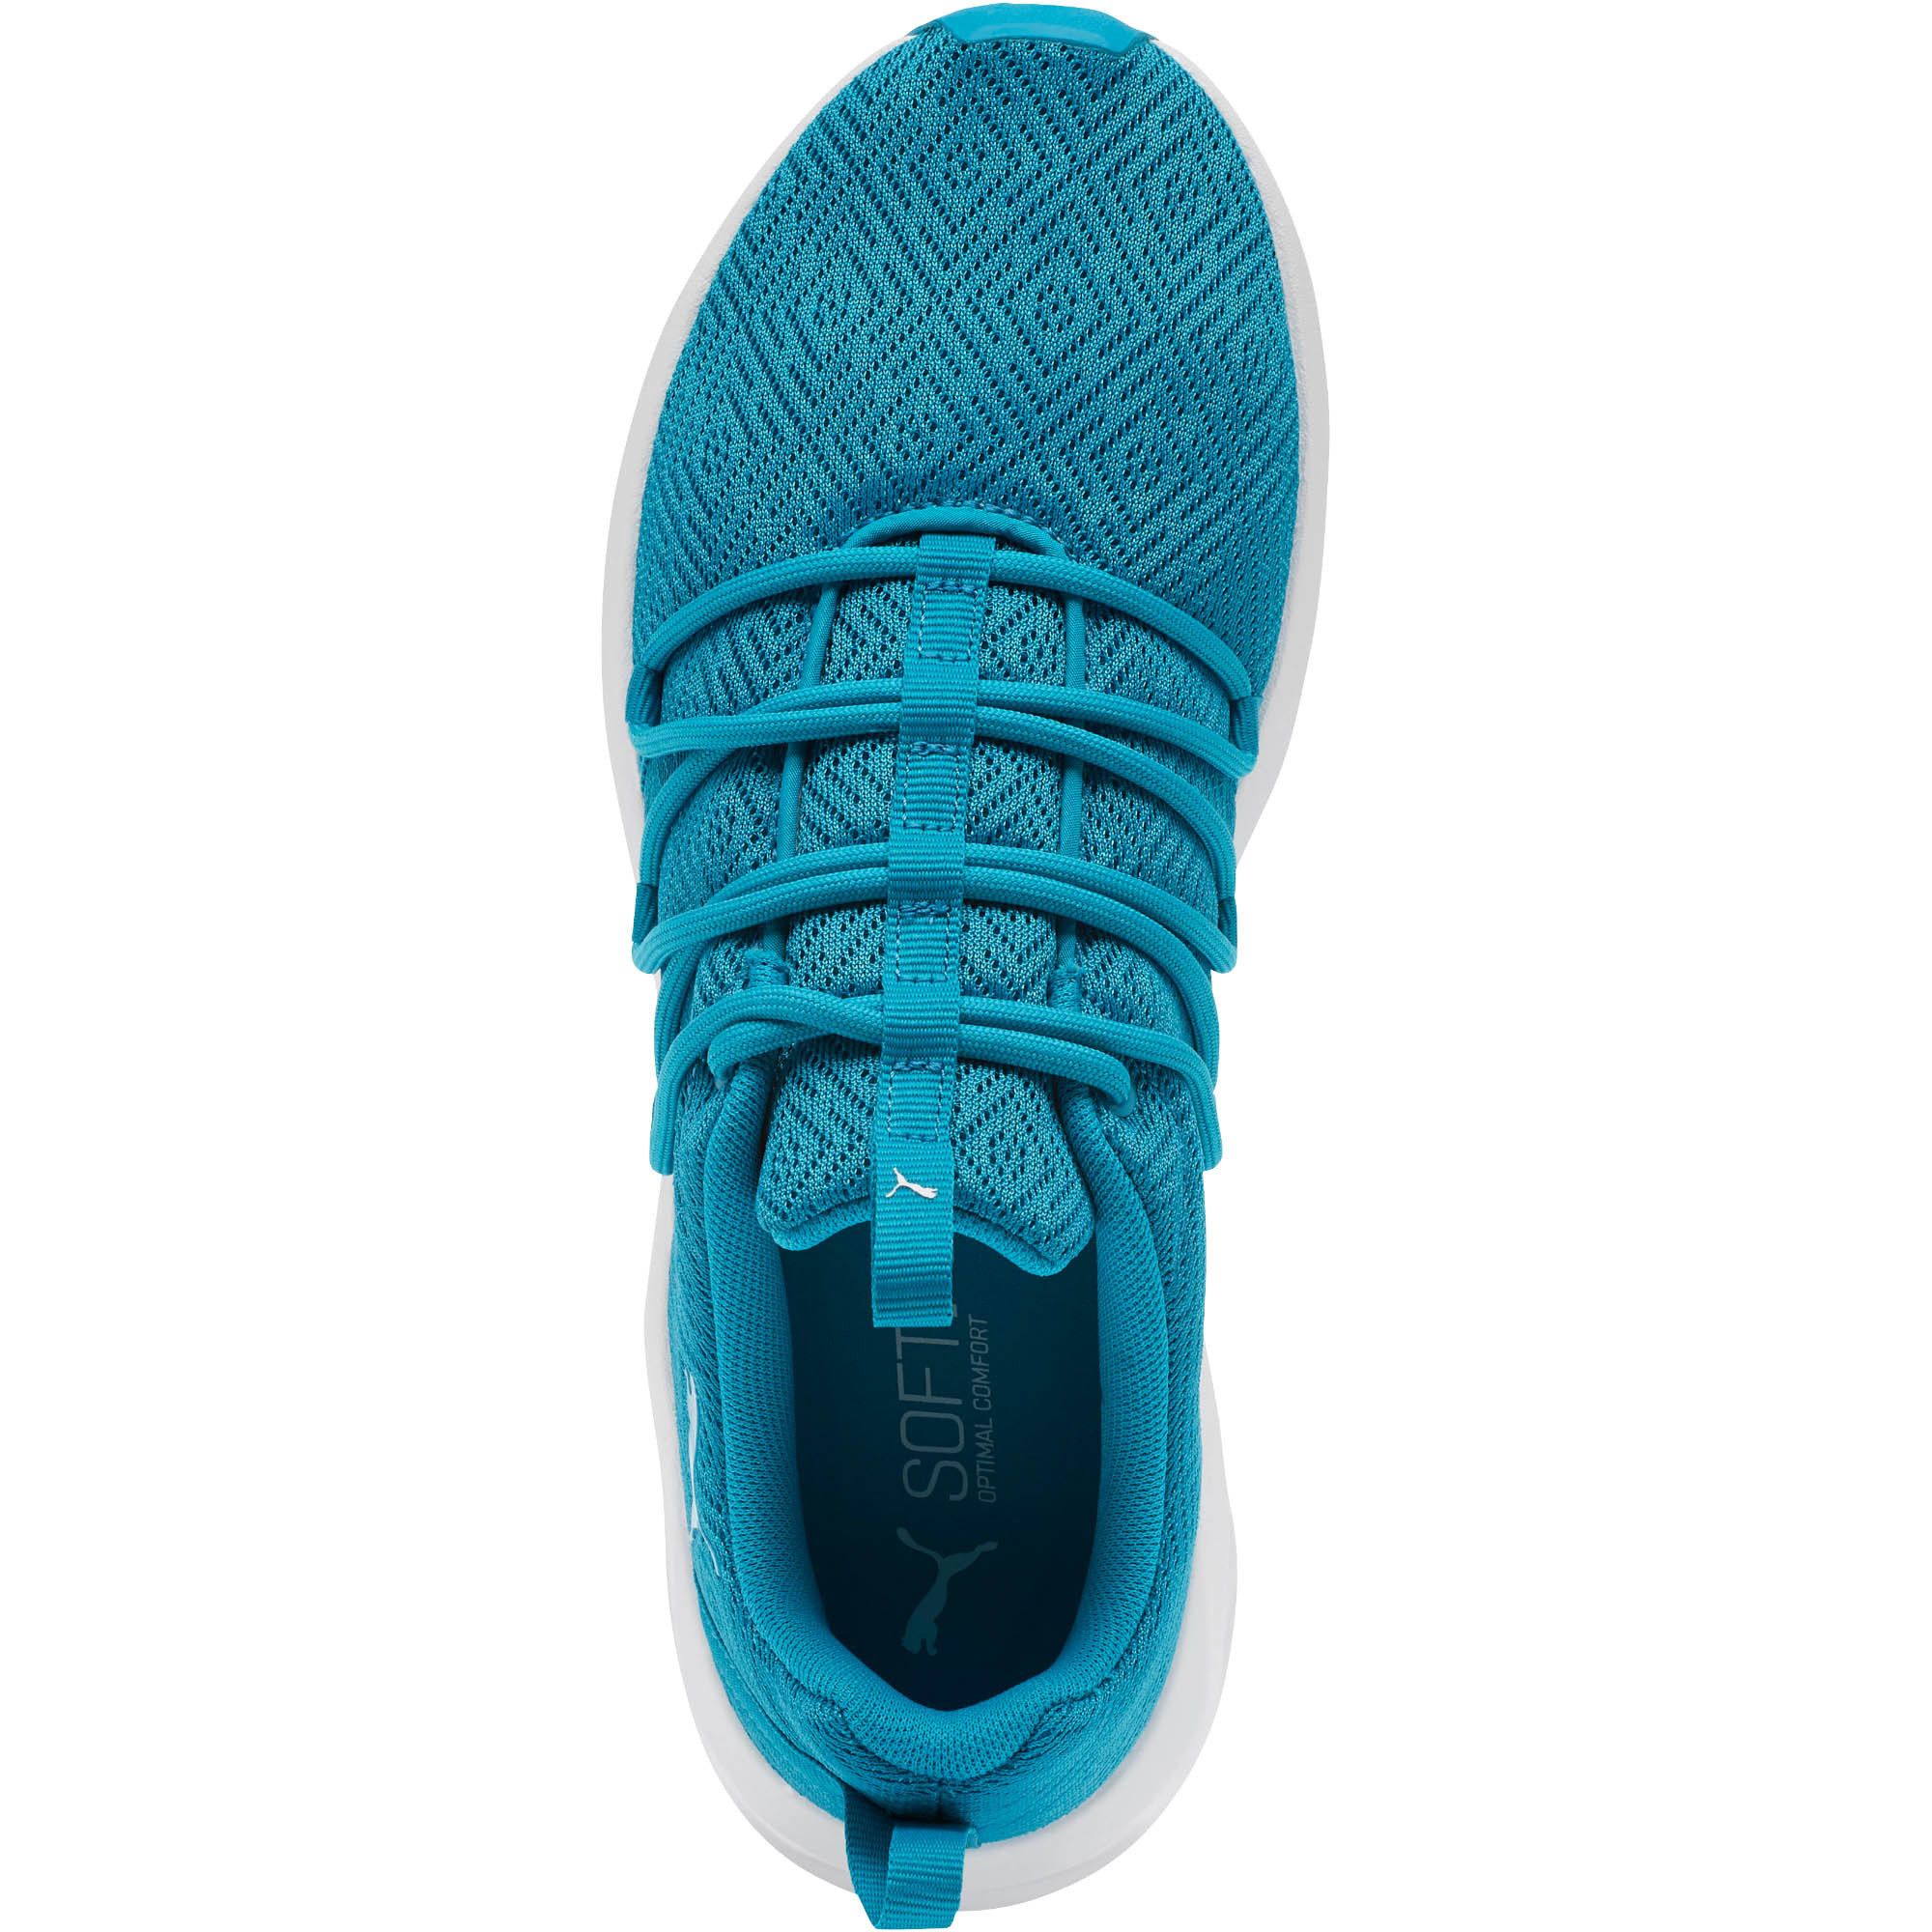 PUMA-Prowl-Alt-Stellar-Women-s-Training-Shoes-Women-Shoe-Training thumbnail 11